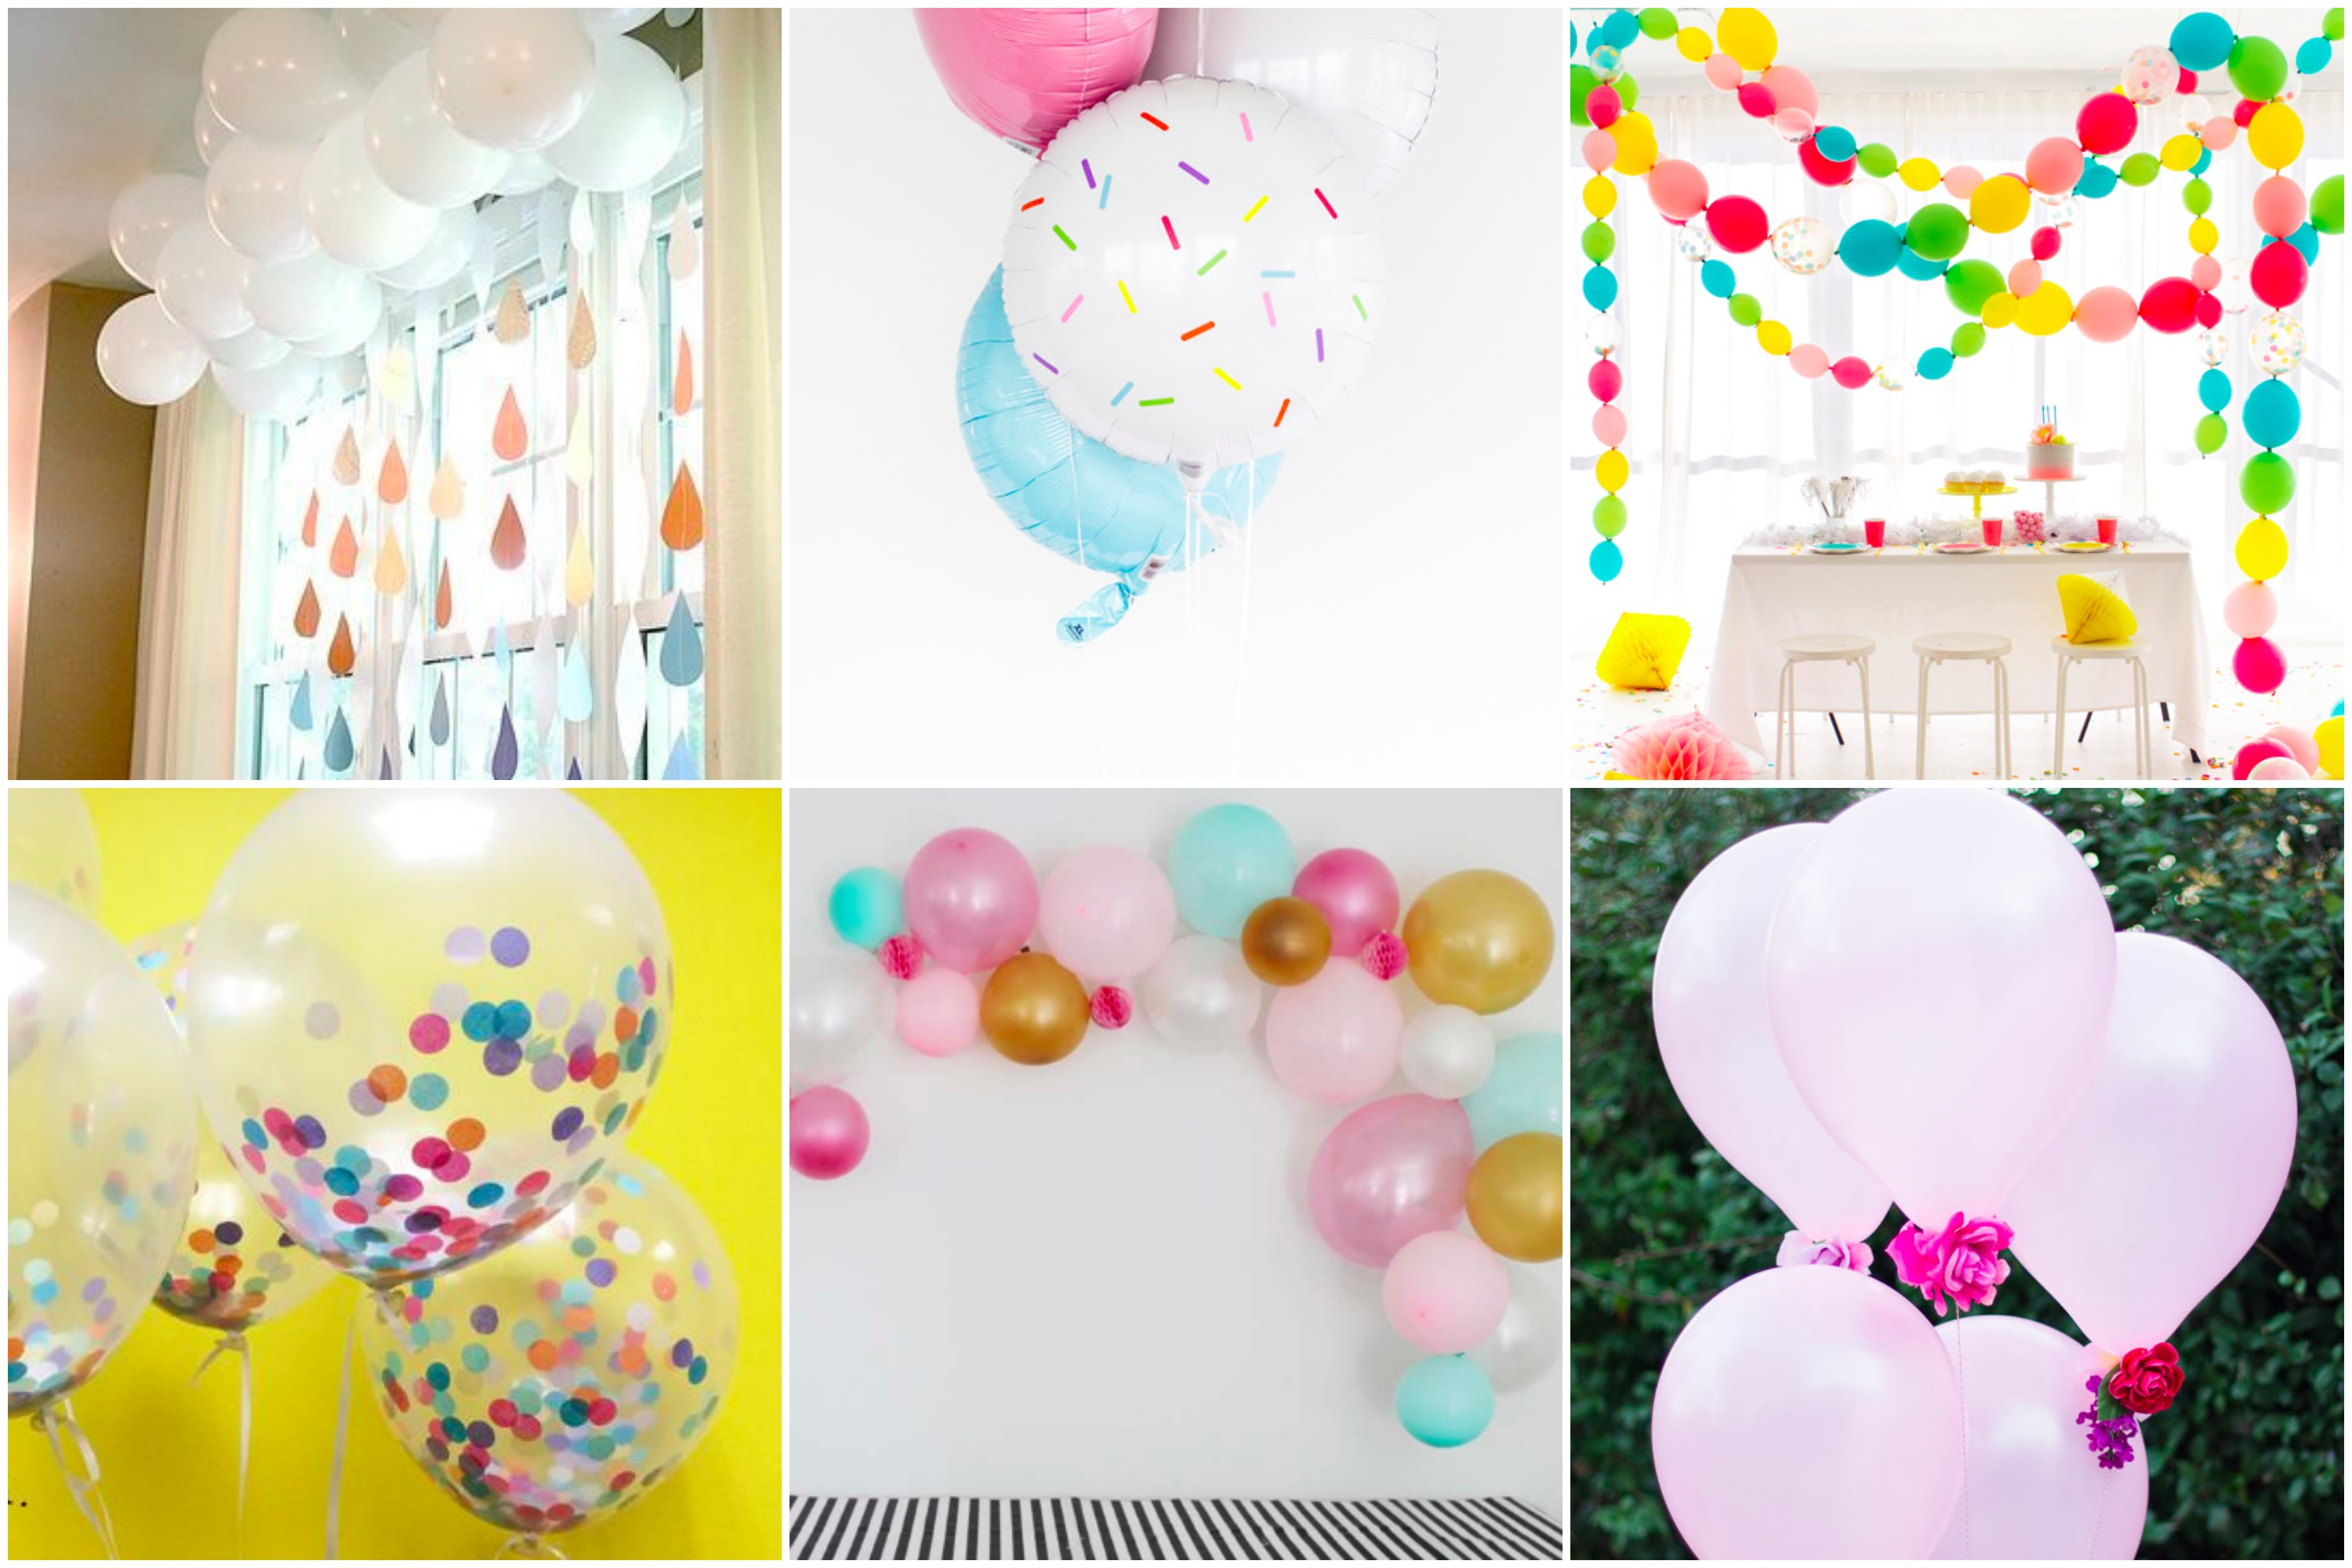 DIY Baby Shower Series. Ideas for creatively arranging balloons as DIY baby shower decorations